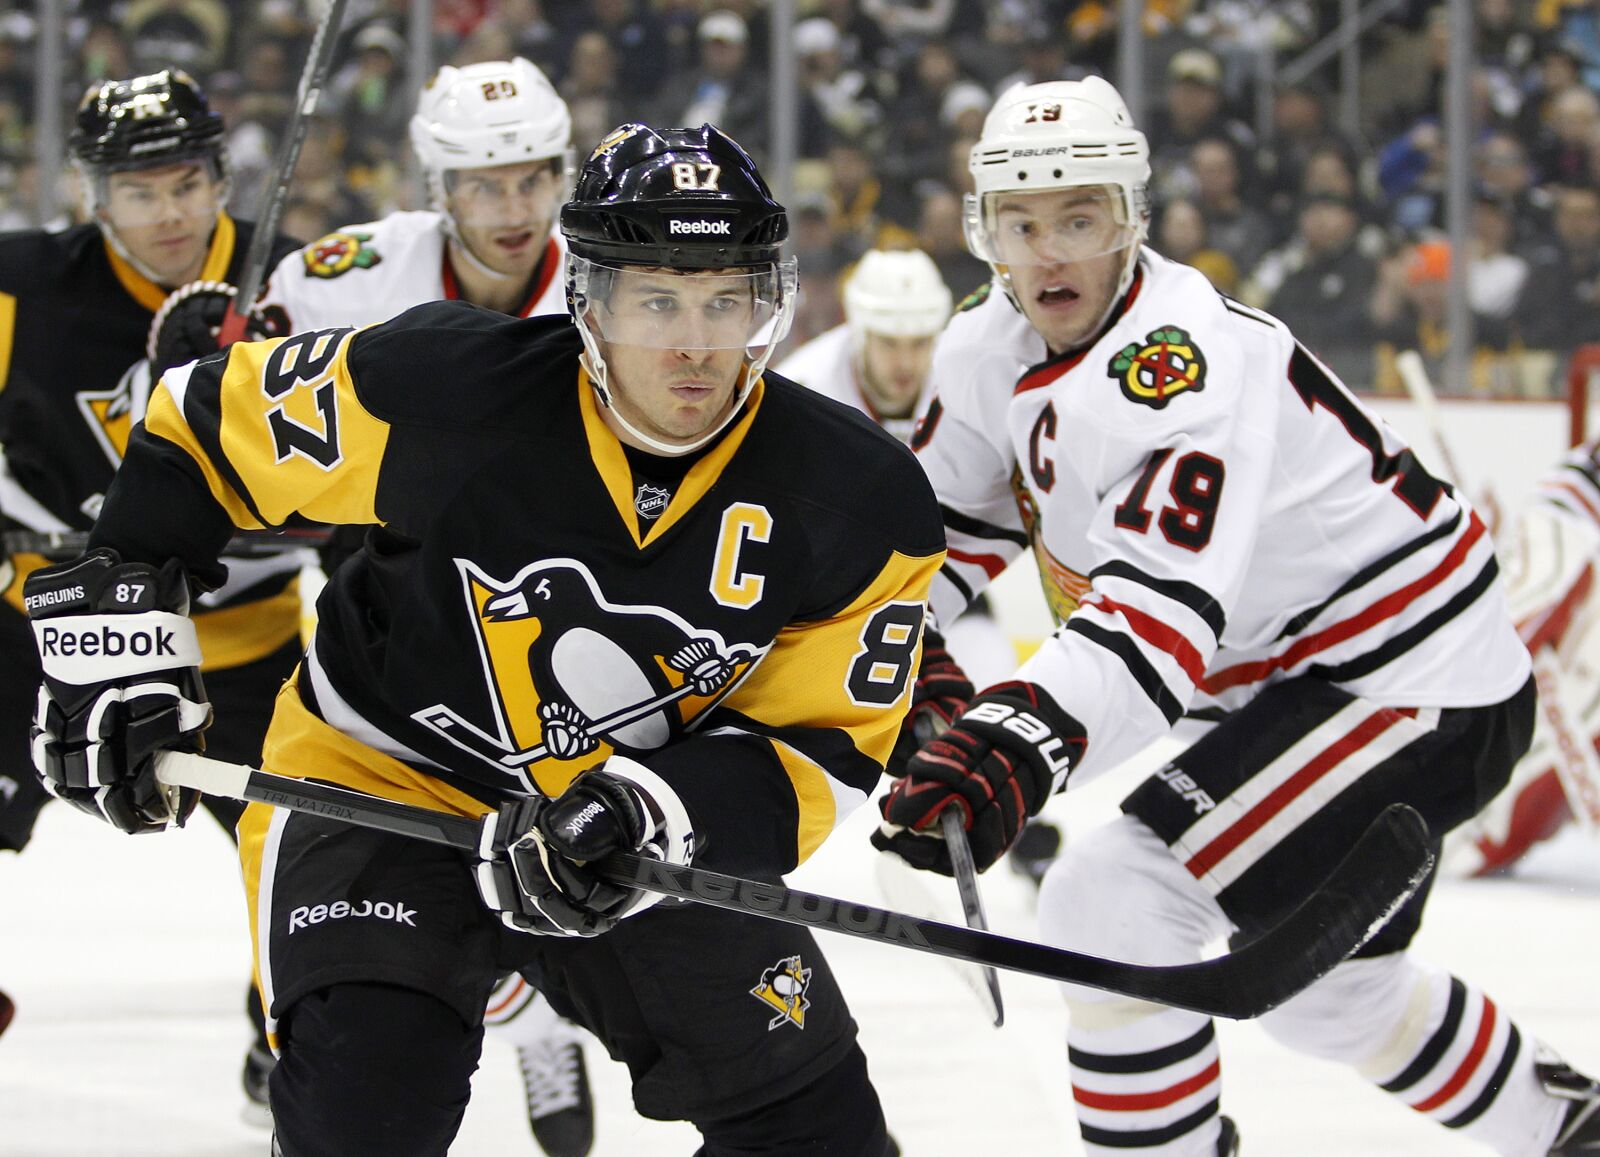 Chicago Blackhawks: Could they follow the Pittsburgh Penguins road?